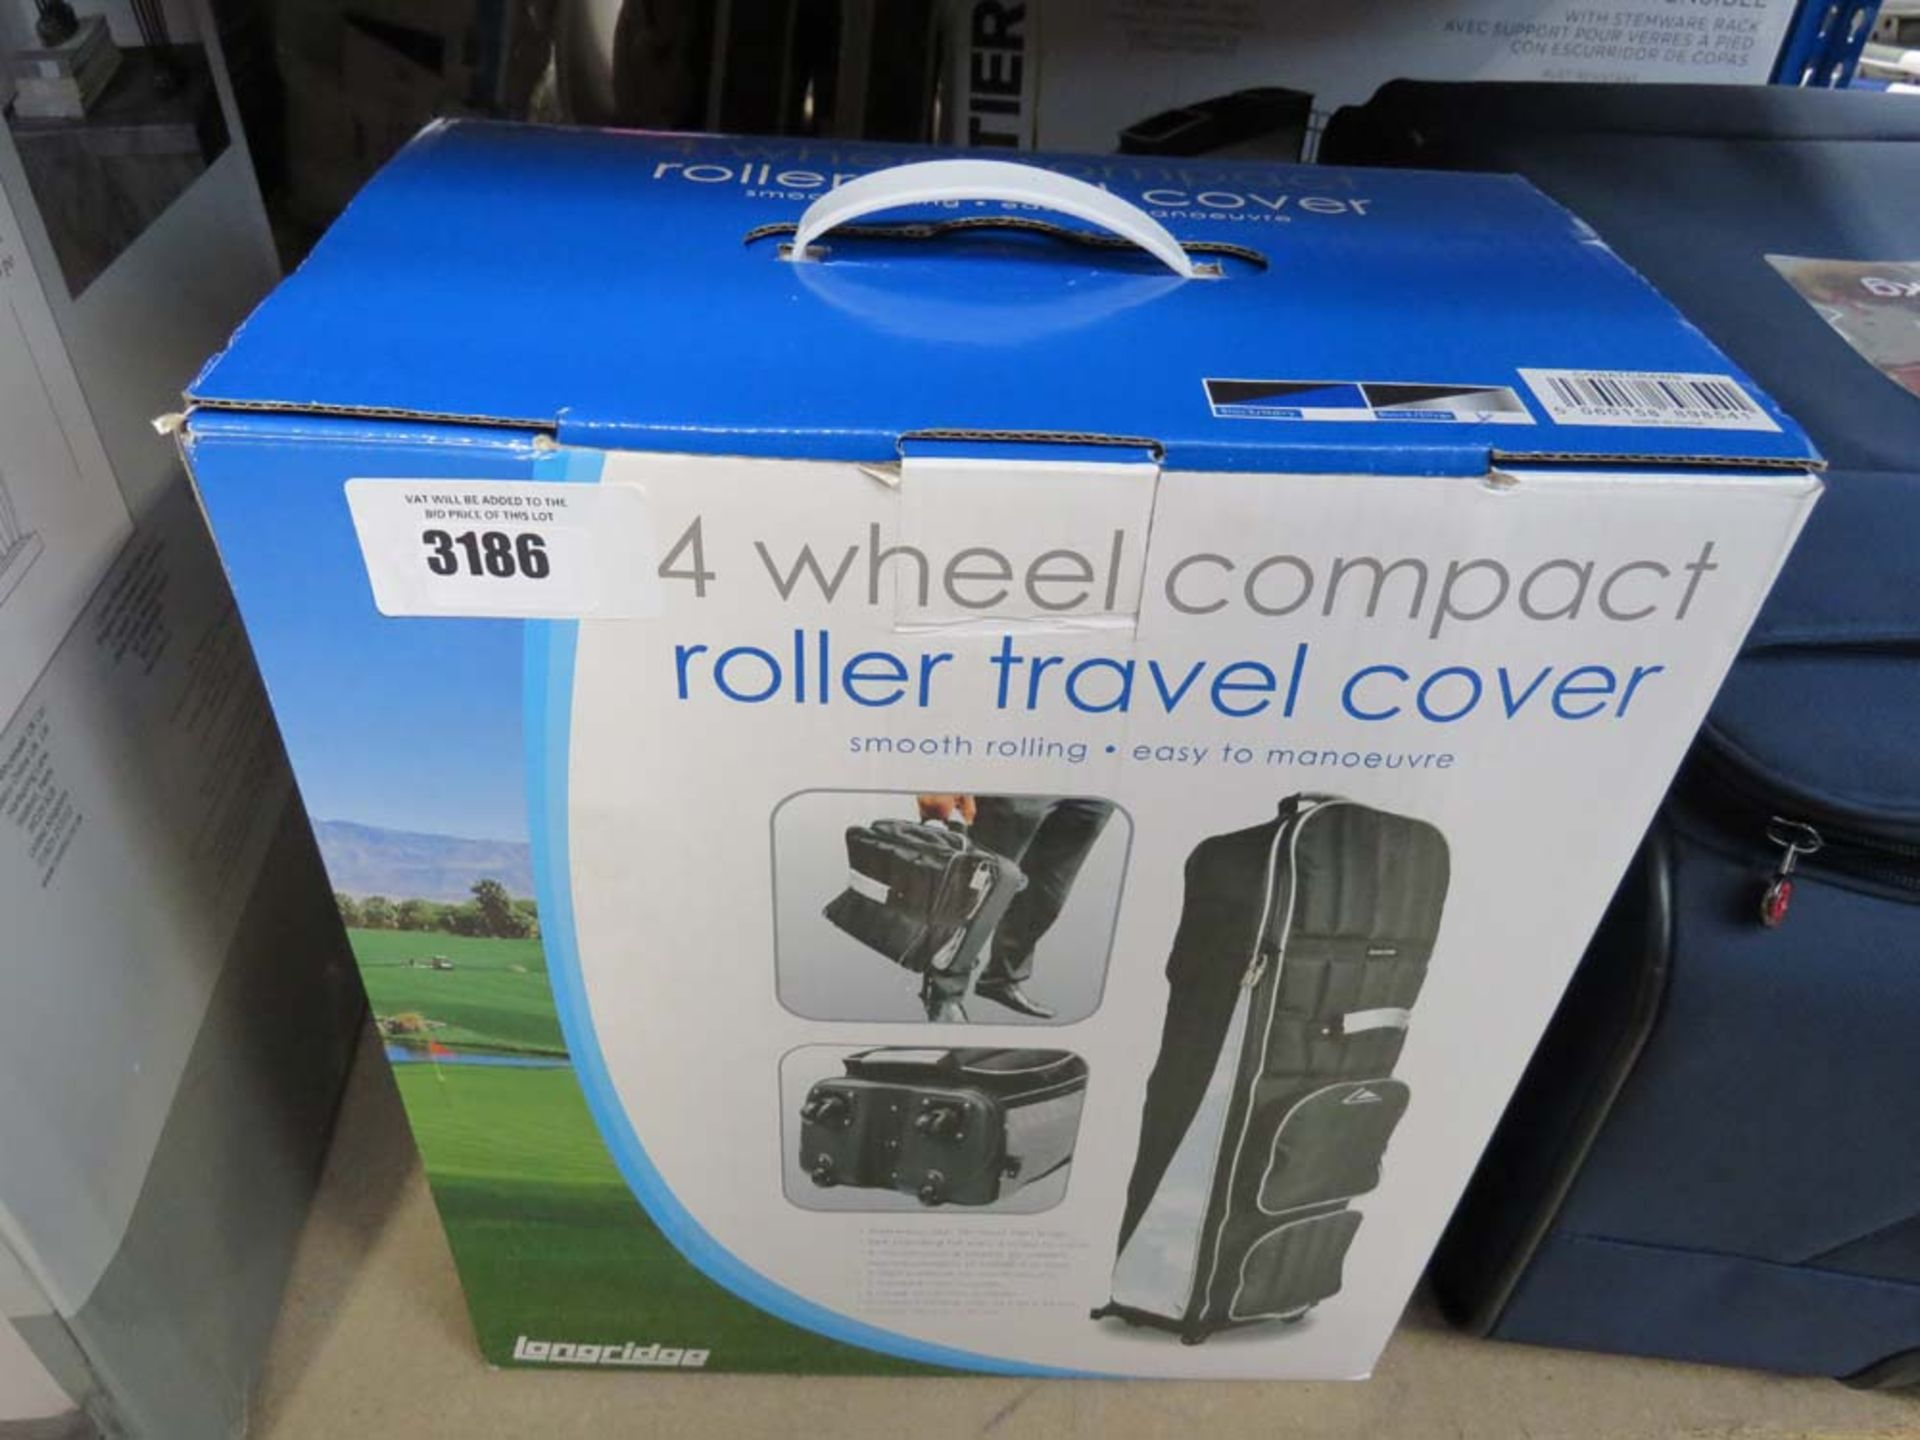 Boxed 4 wheel compact roller